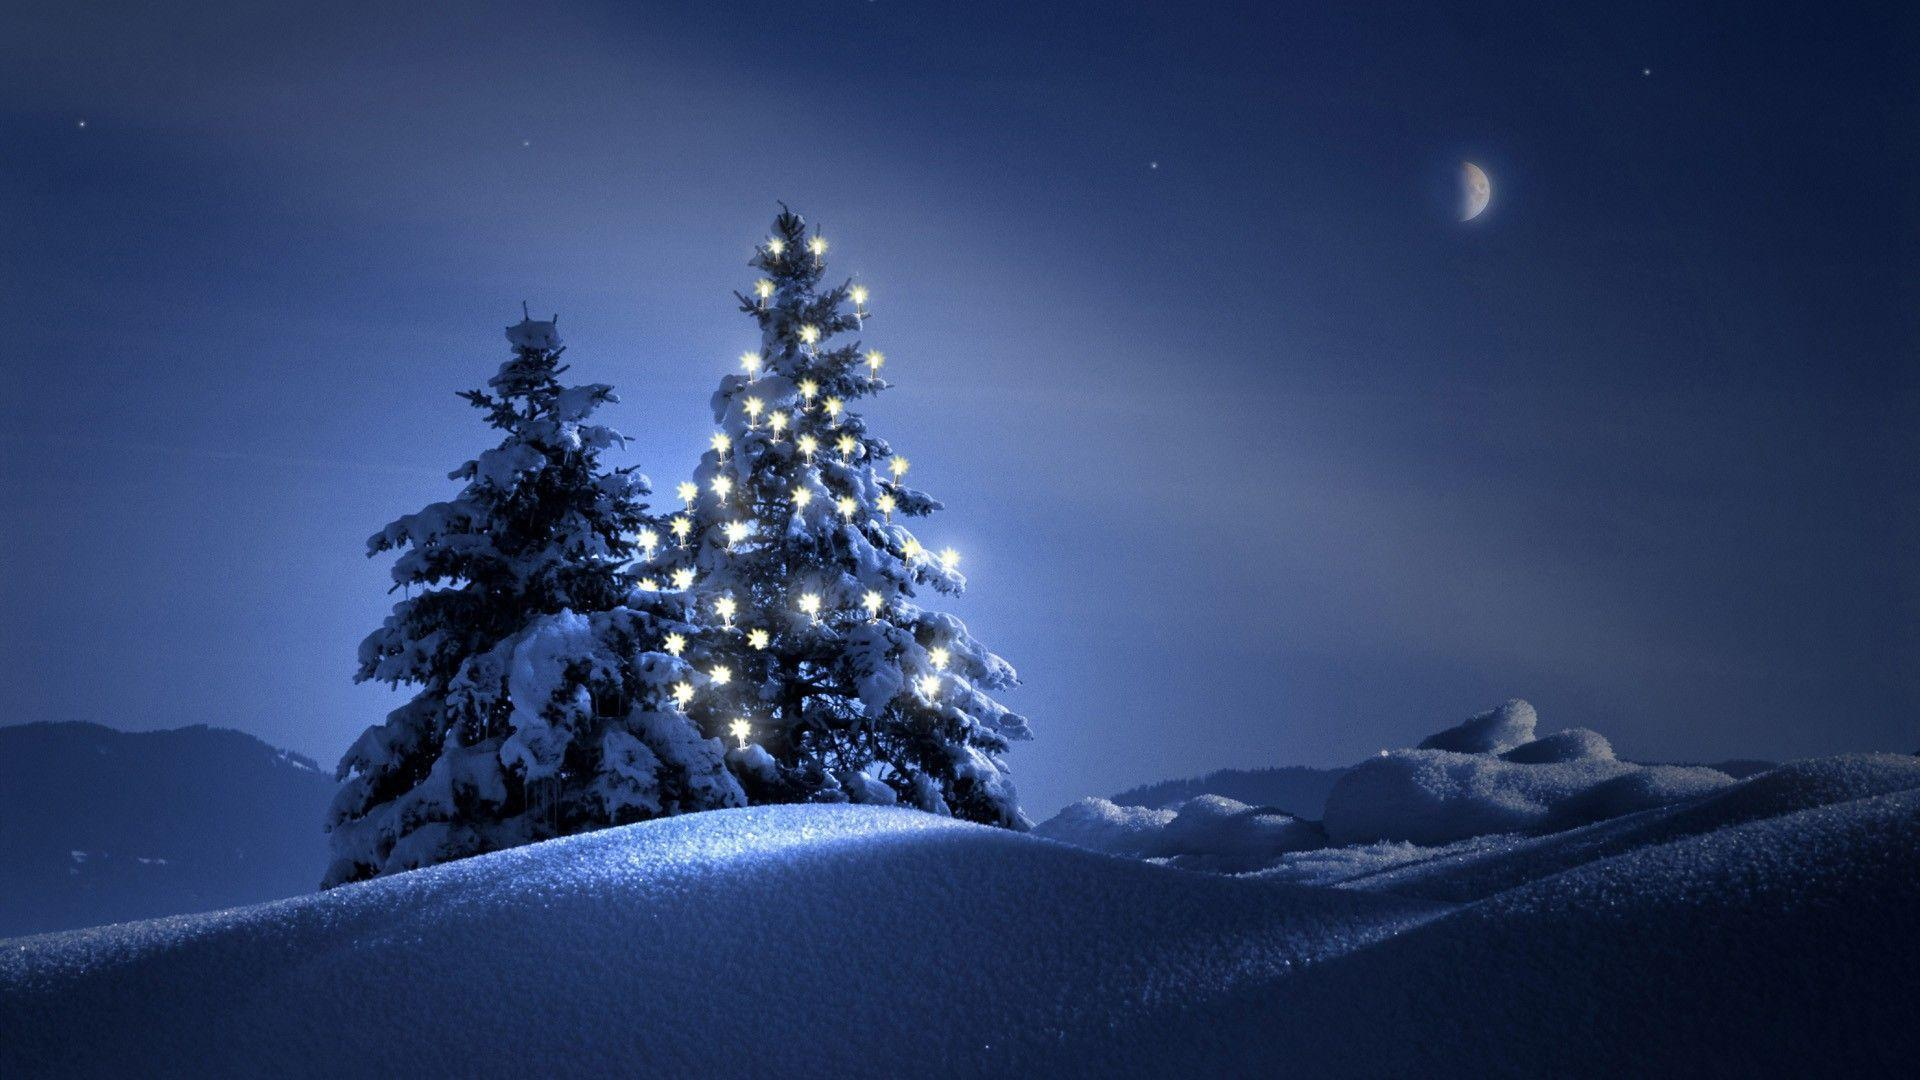 Christmas Trees Backgrounds - Wallpaper Cave